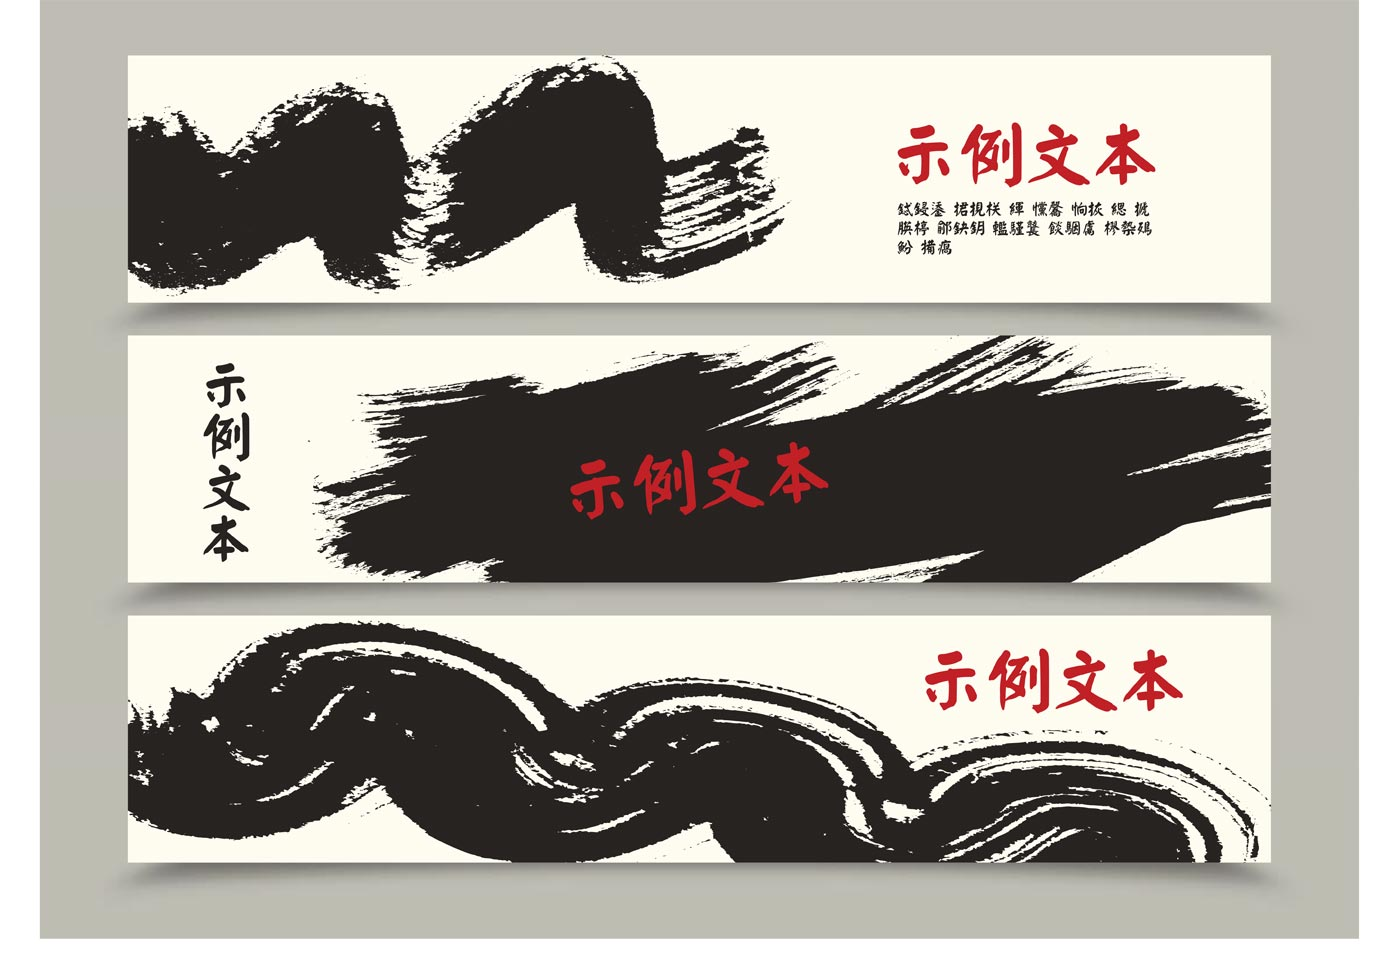 Free chinese calligraphy vector banners download free Japanese calligraphy online